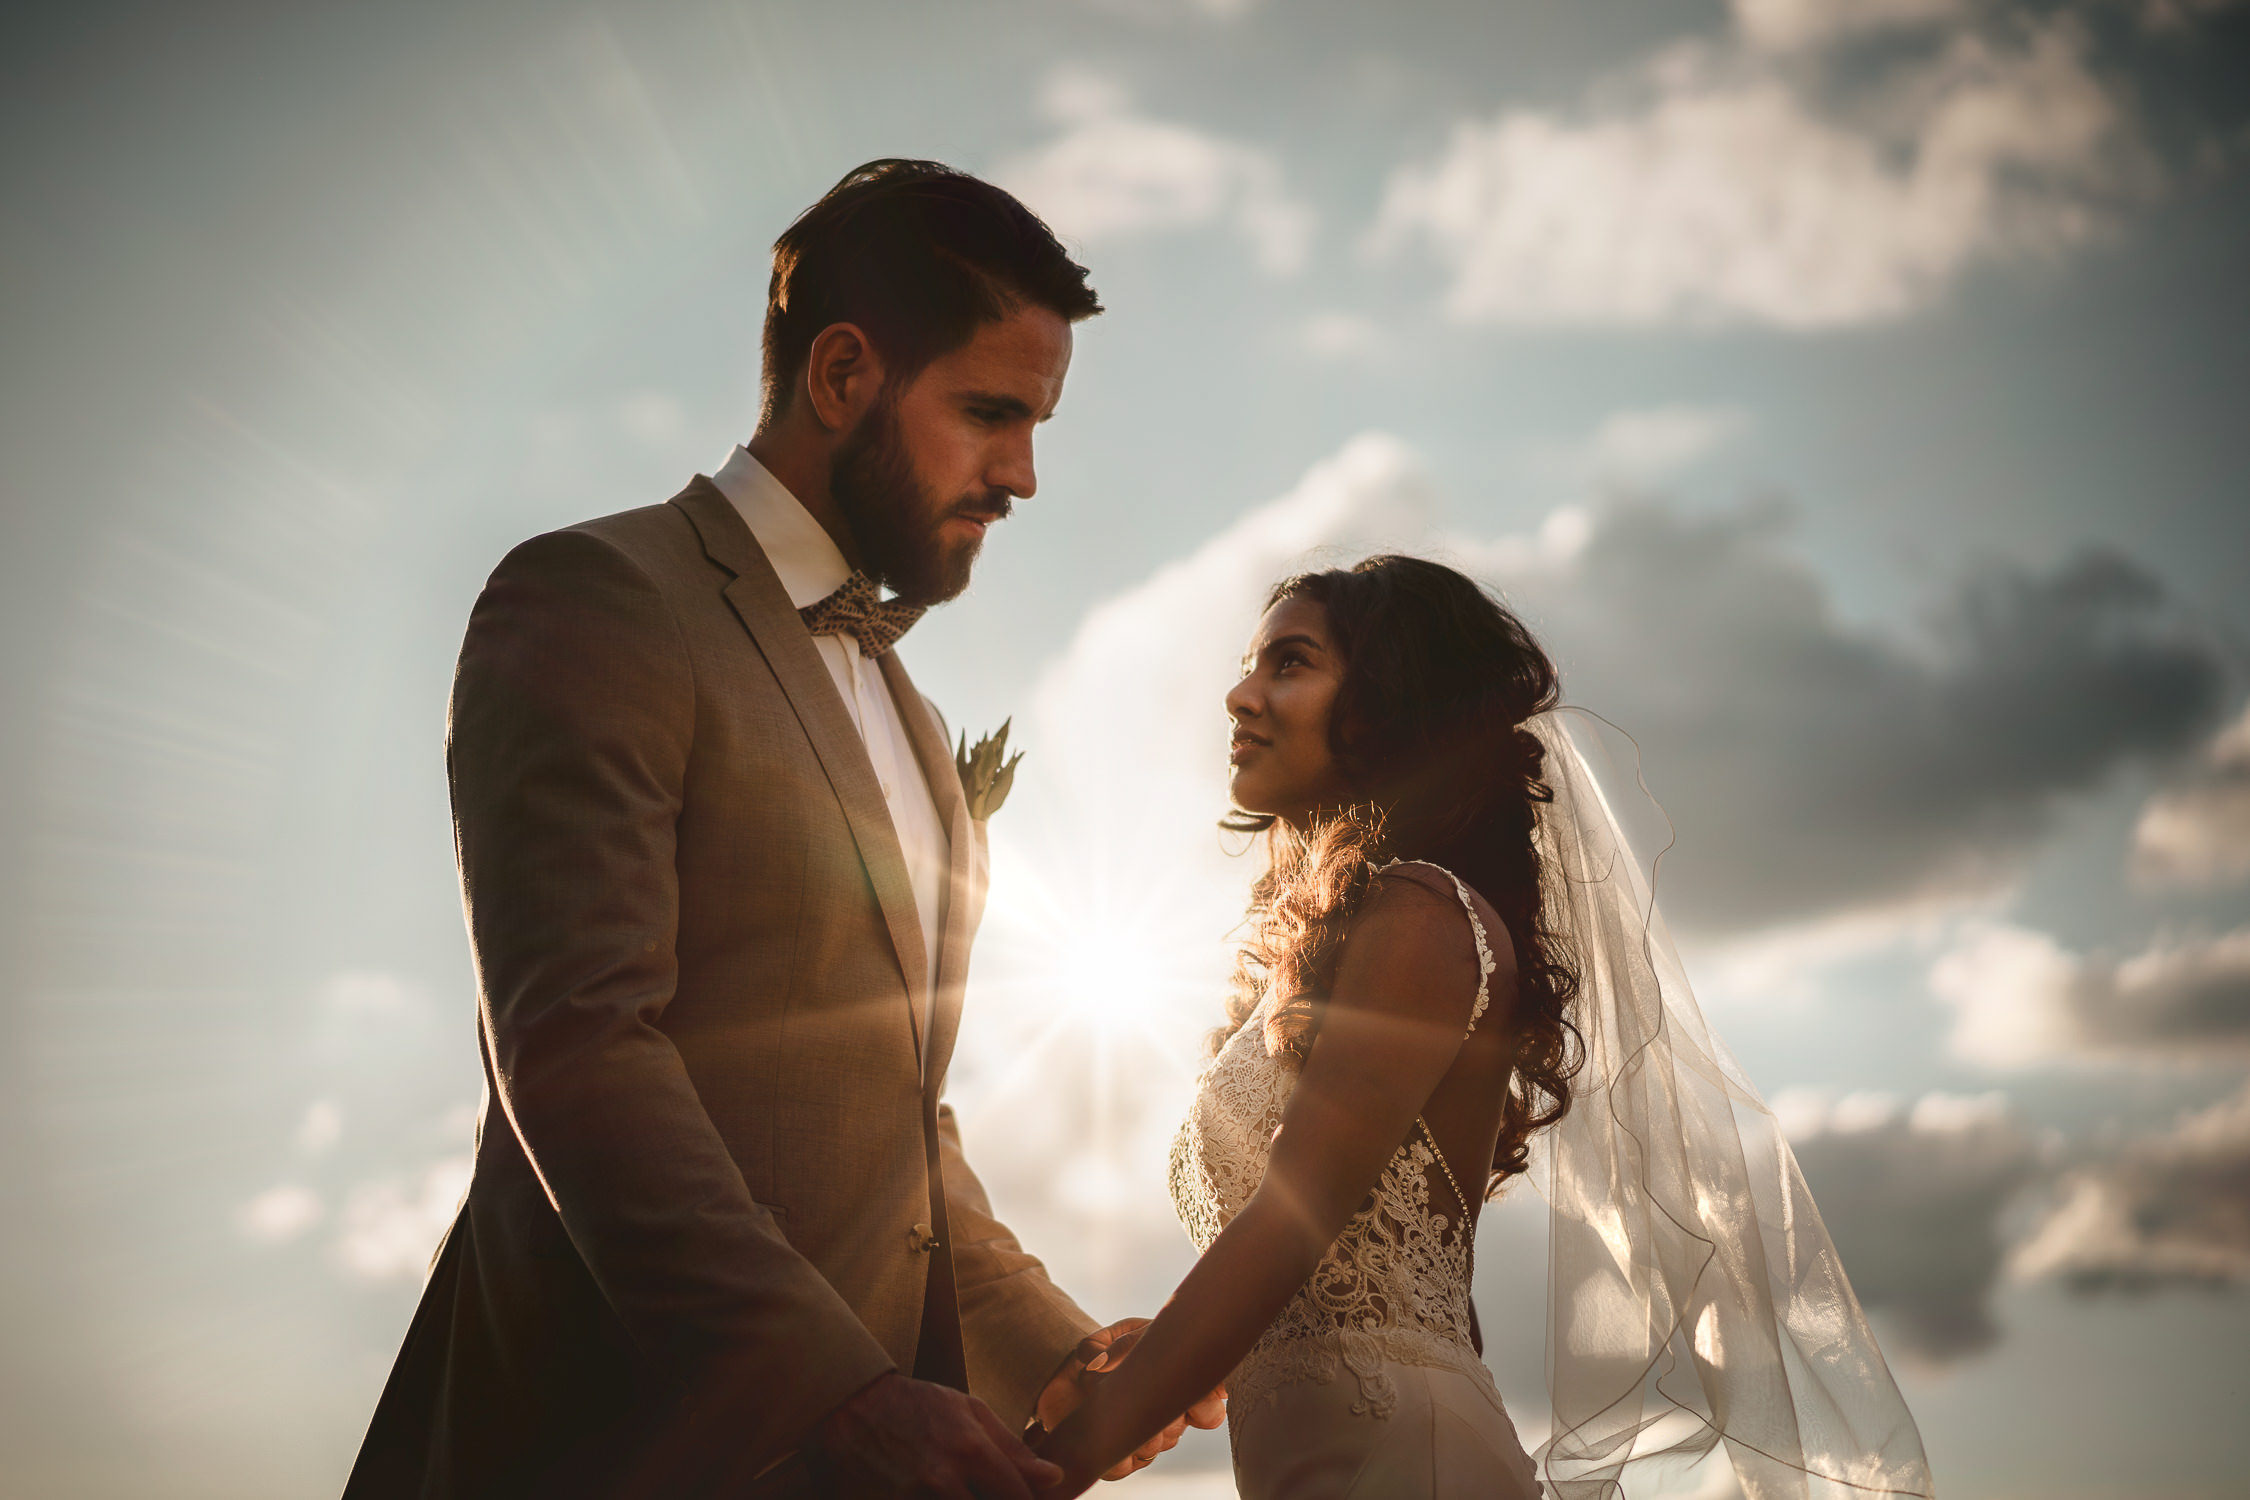 romatic wedding photography from mark hadden of amsterdam - couple at sunset with love